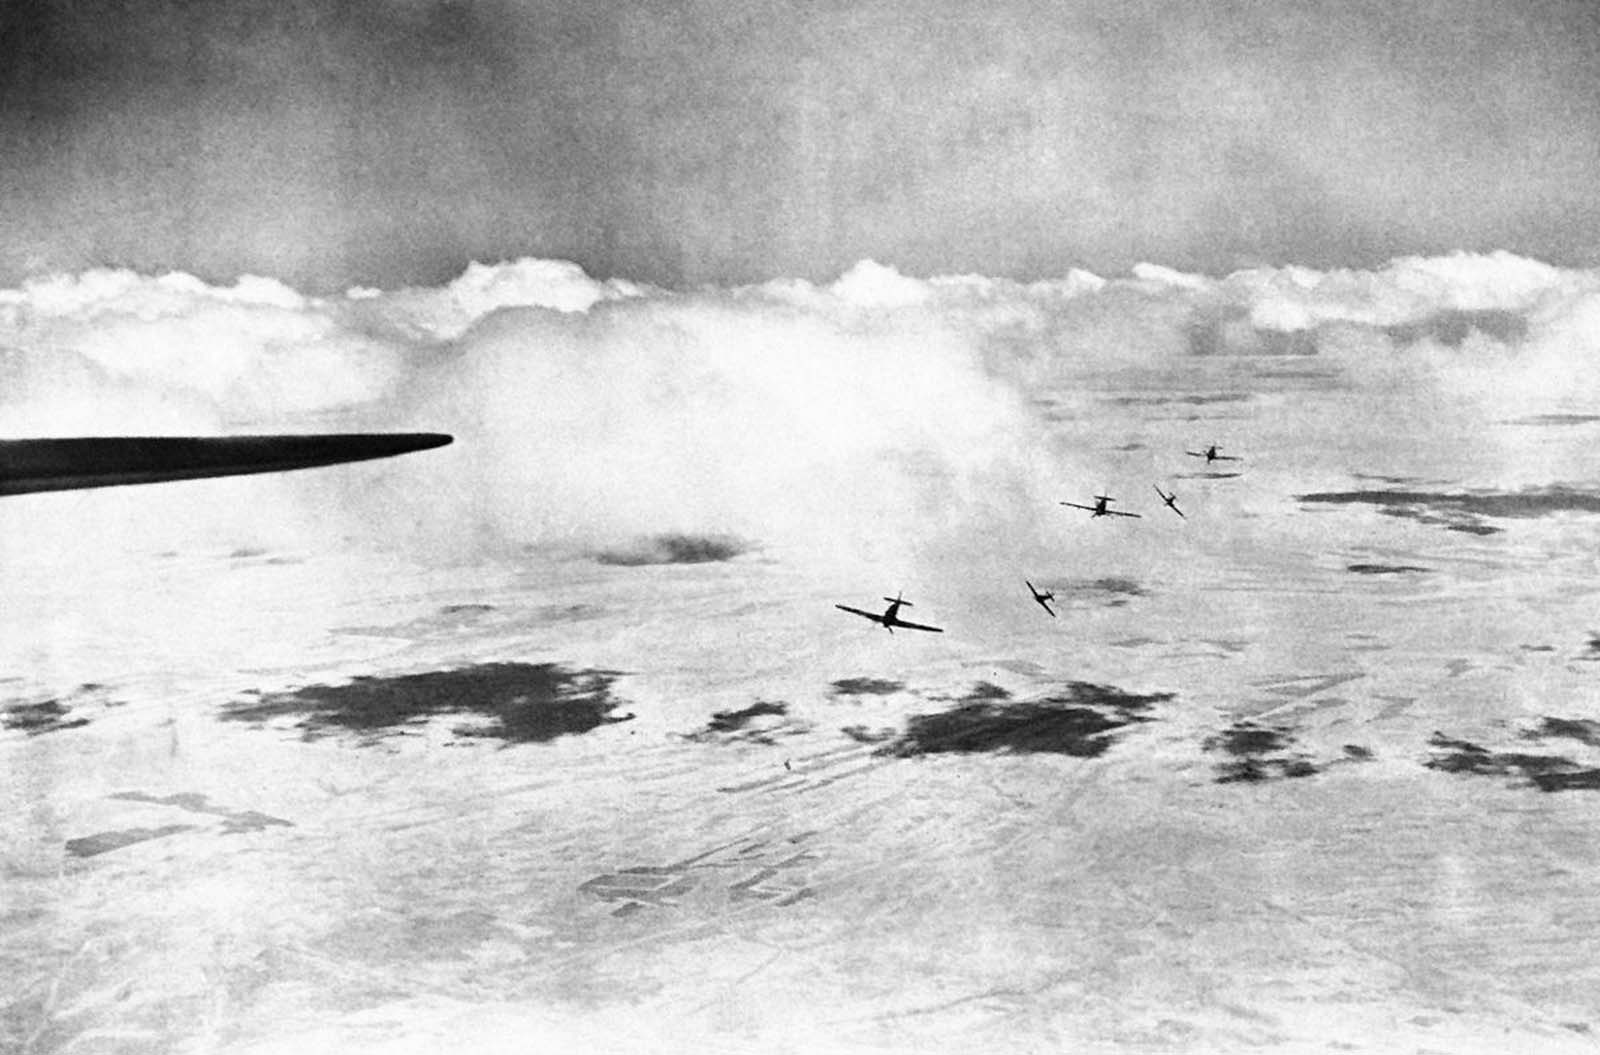 The moment a patrol of British Hurricane fighter planes, flying over a middle east sector, broke formation to attack enemy aircraft, on December 28, 1940.